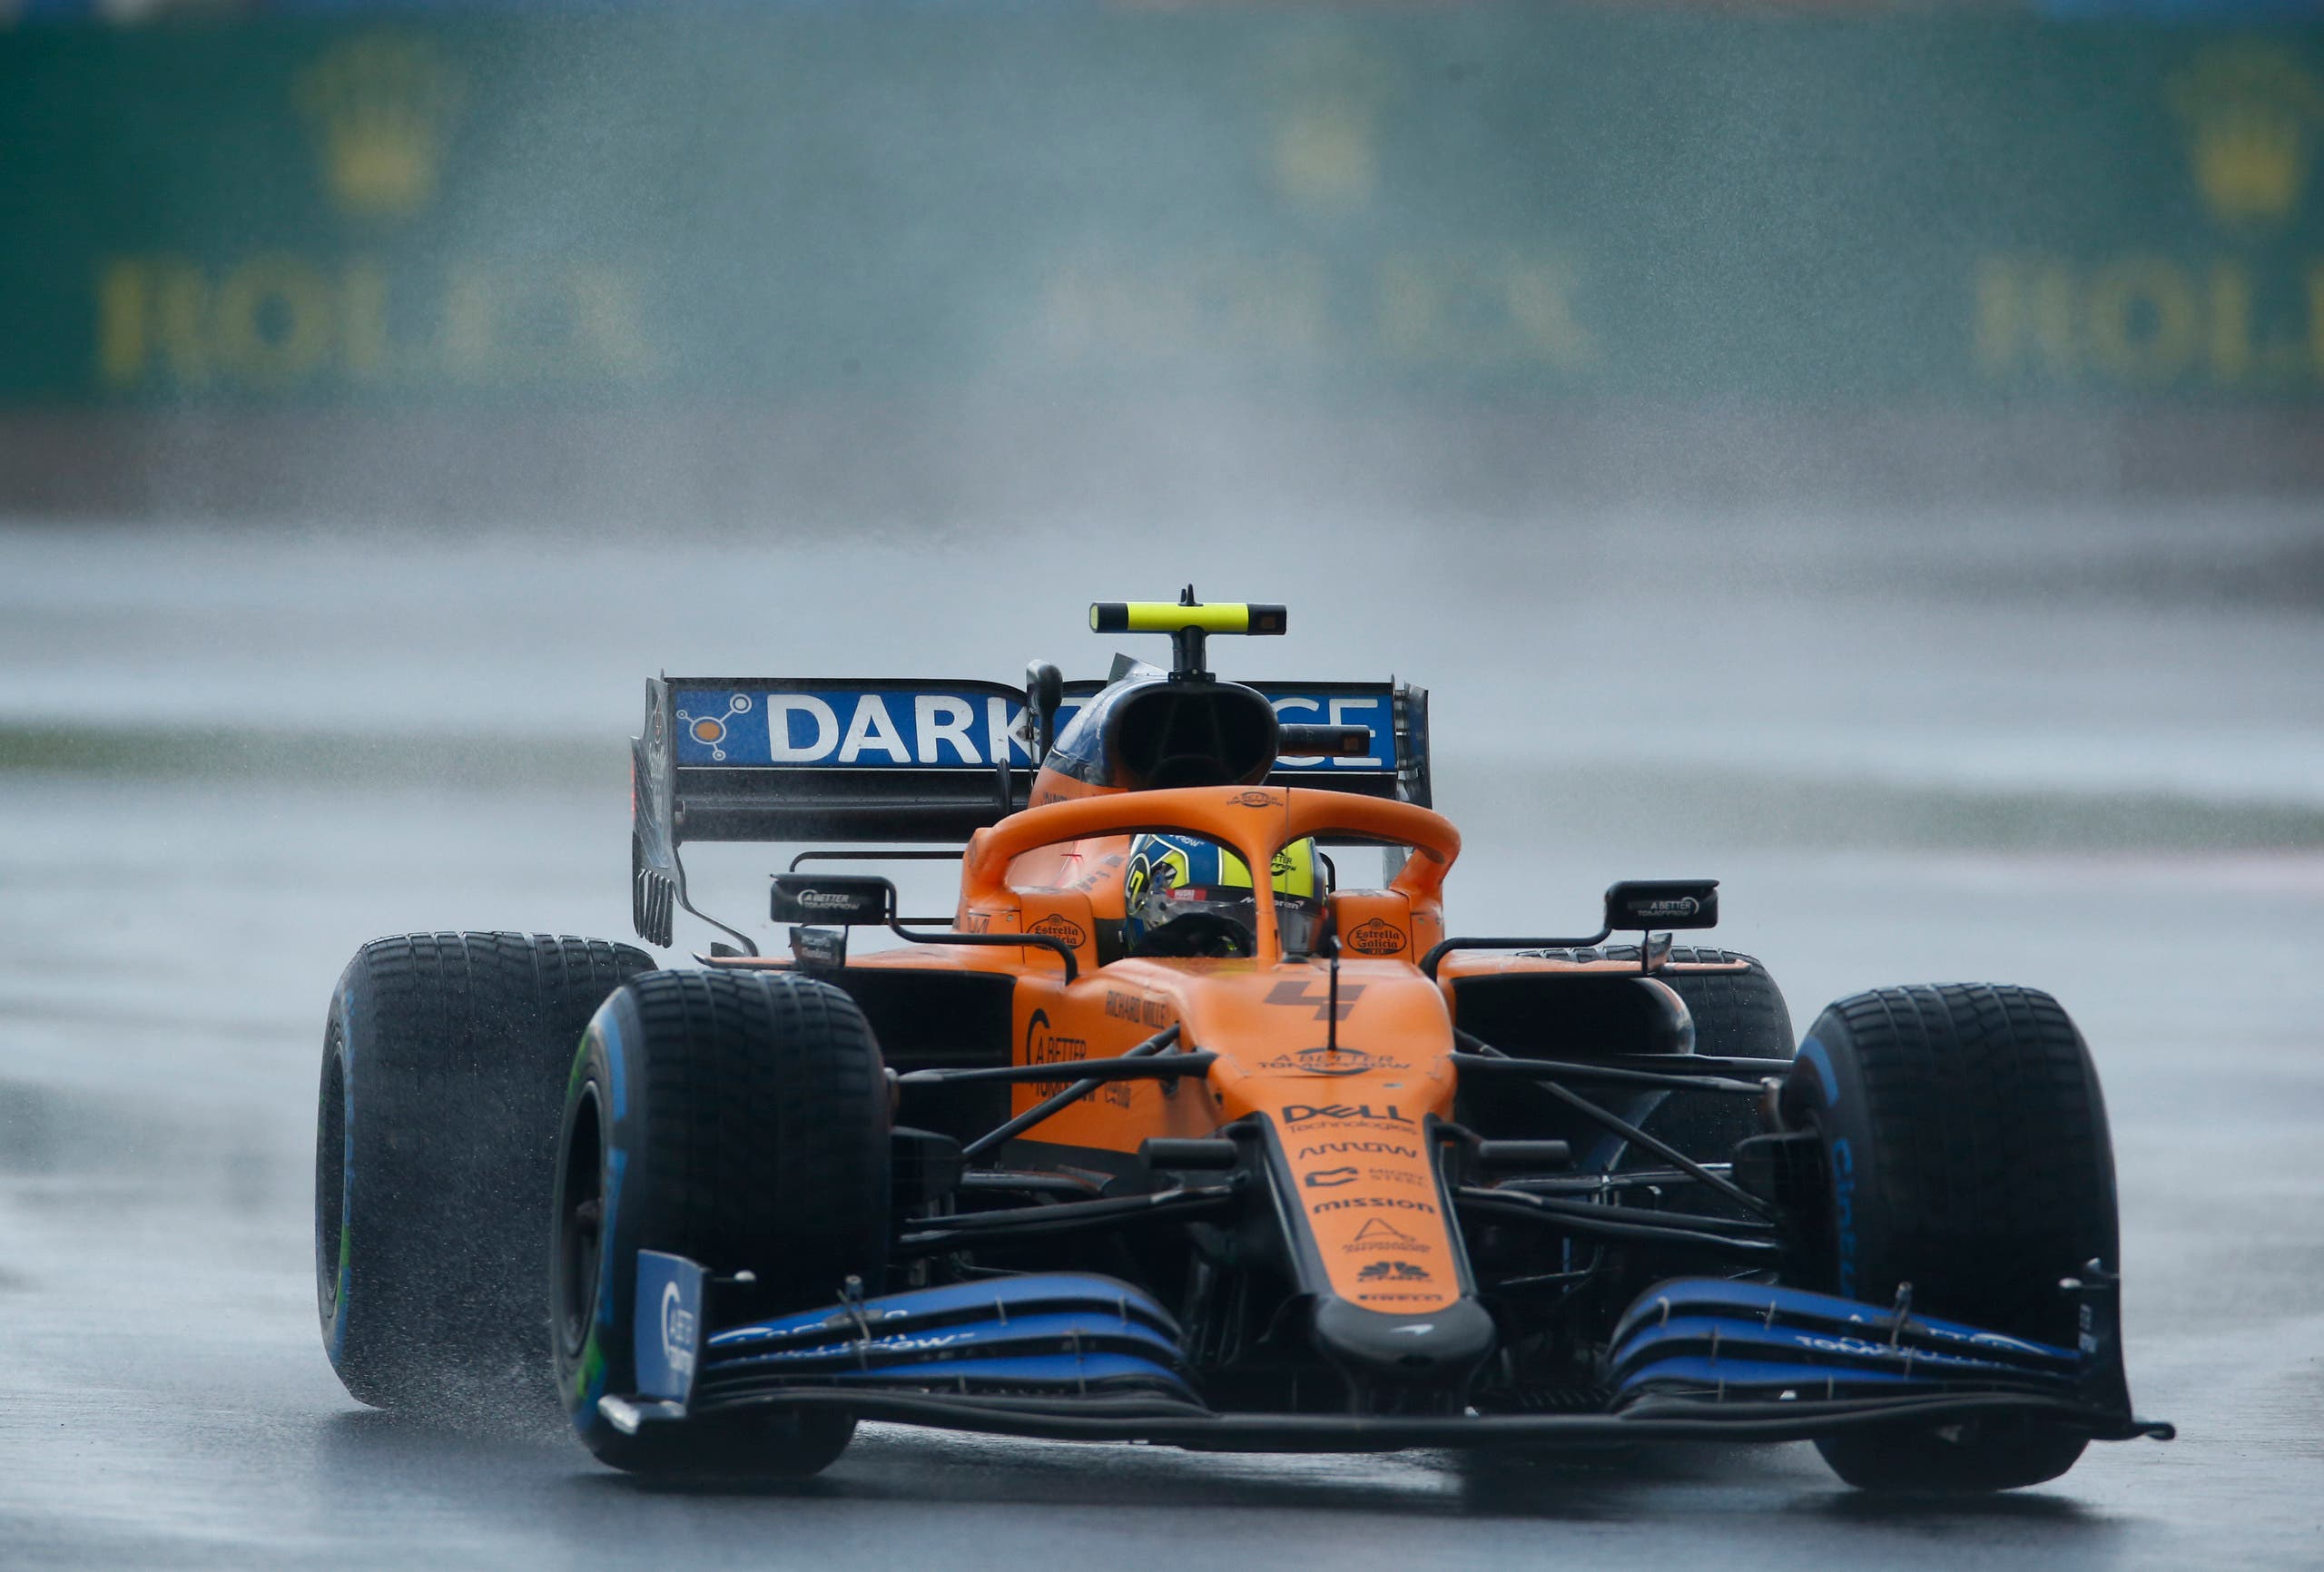 Mclaren driver Lando Norris of Britain steers his car during the qualifying session at the Istanbul Park circuit racetrack. (AP)